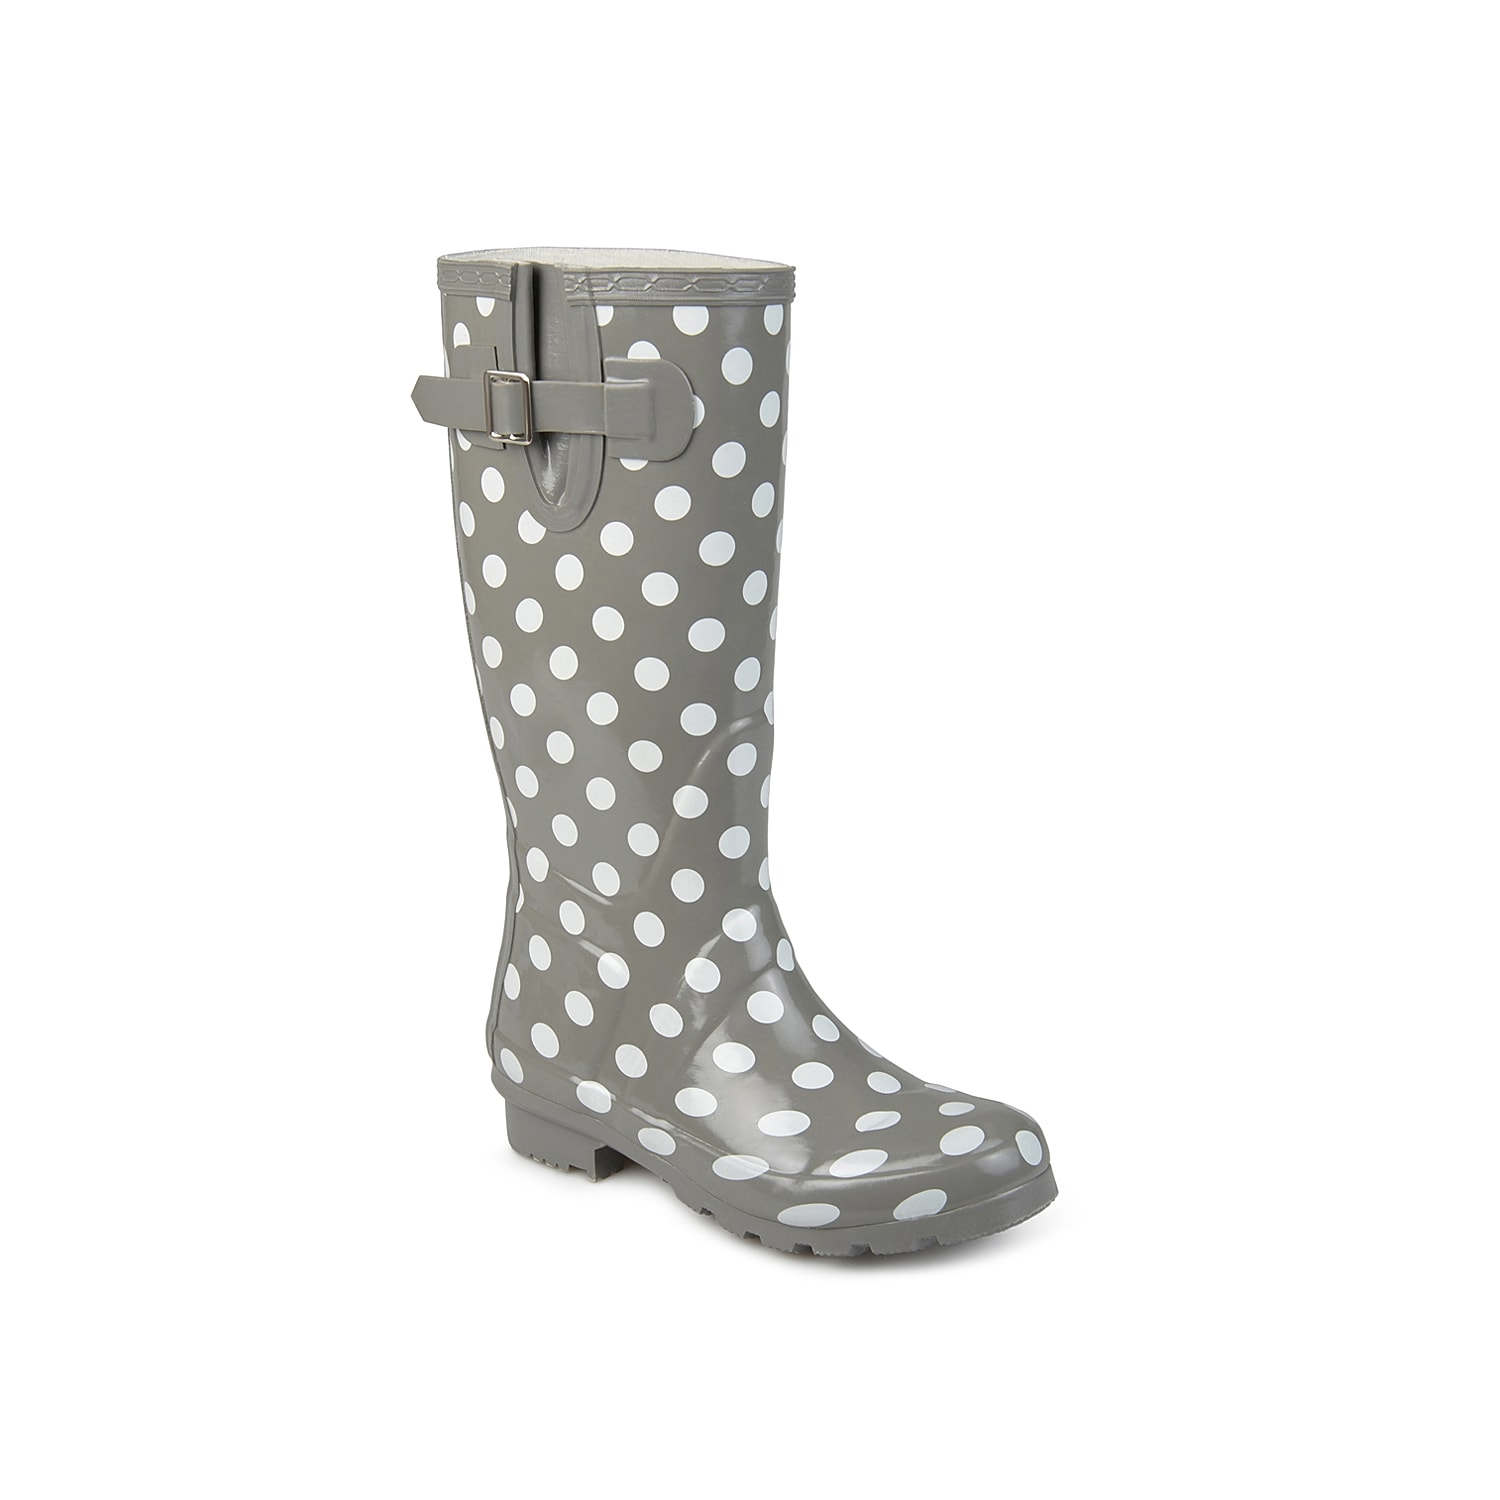 Add a pop of personality to your look on gloomy days with the bold Mist rain boot from Journee Collection. These wellies feature a waterproof rubber design to keep your feet dry while splashing through puddles. Click here for Boot Measuring Guide.